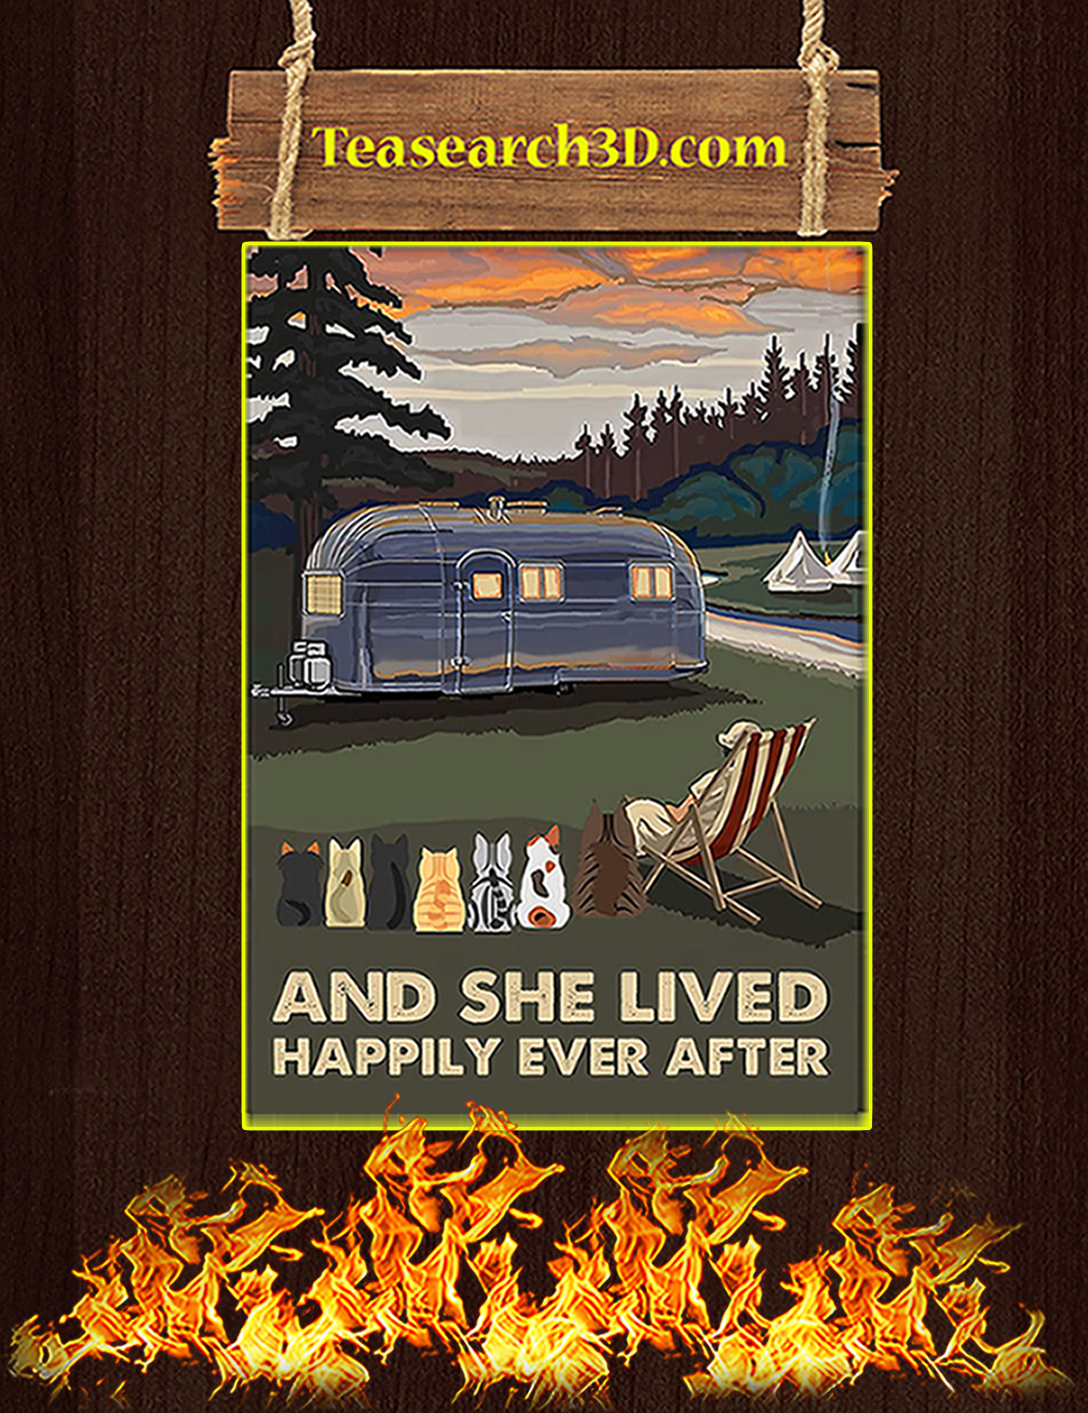 Camping cats and she lived happily ever after poster A2